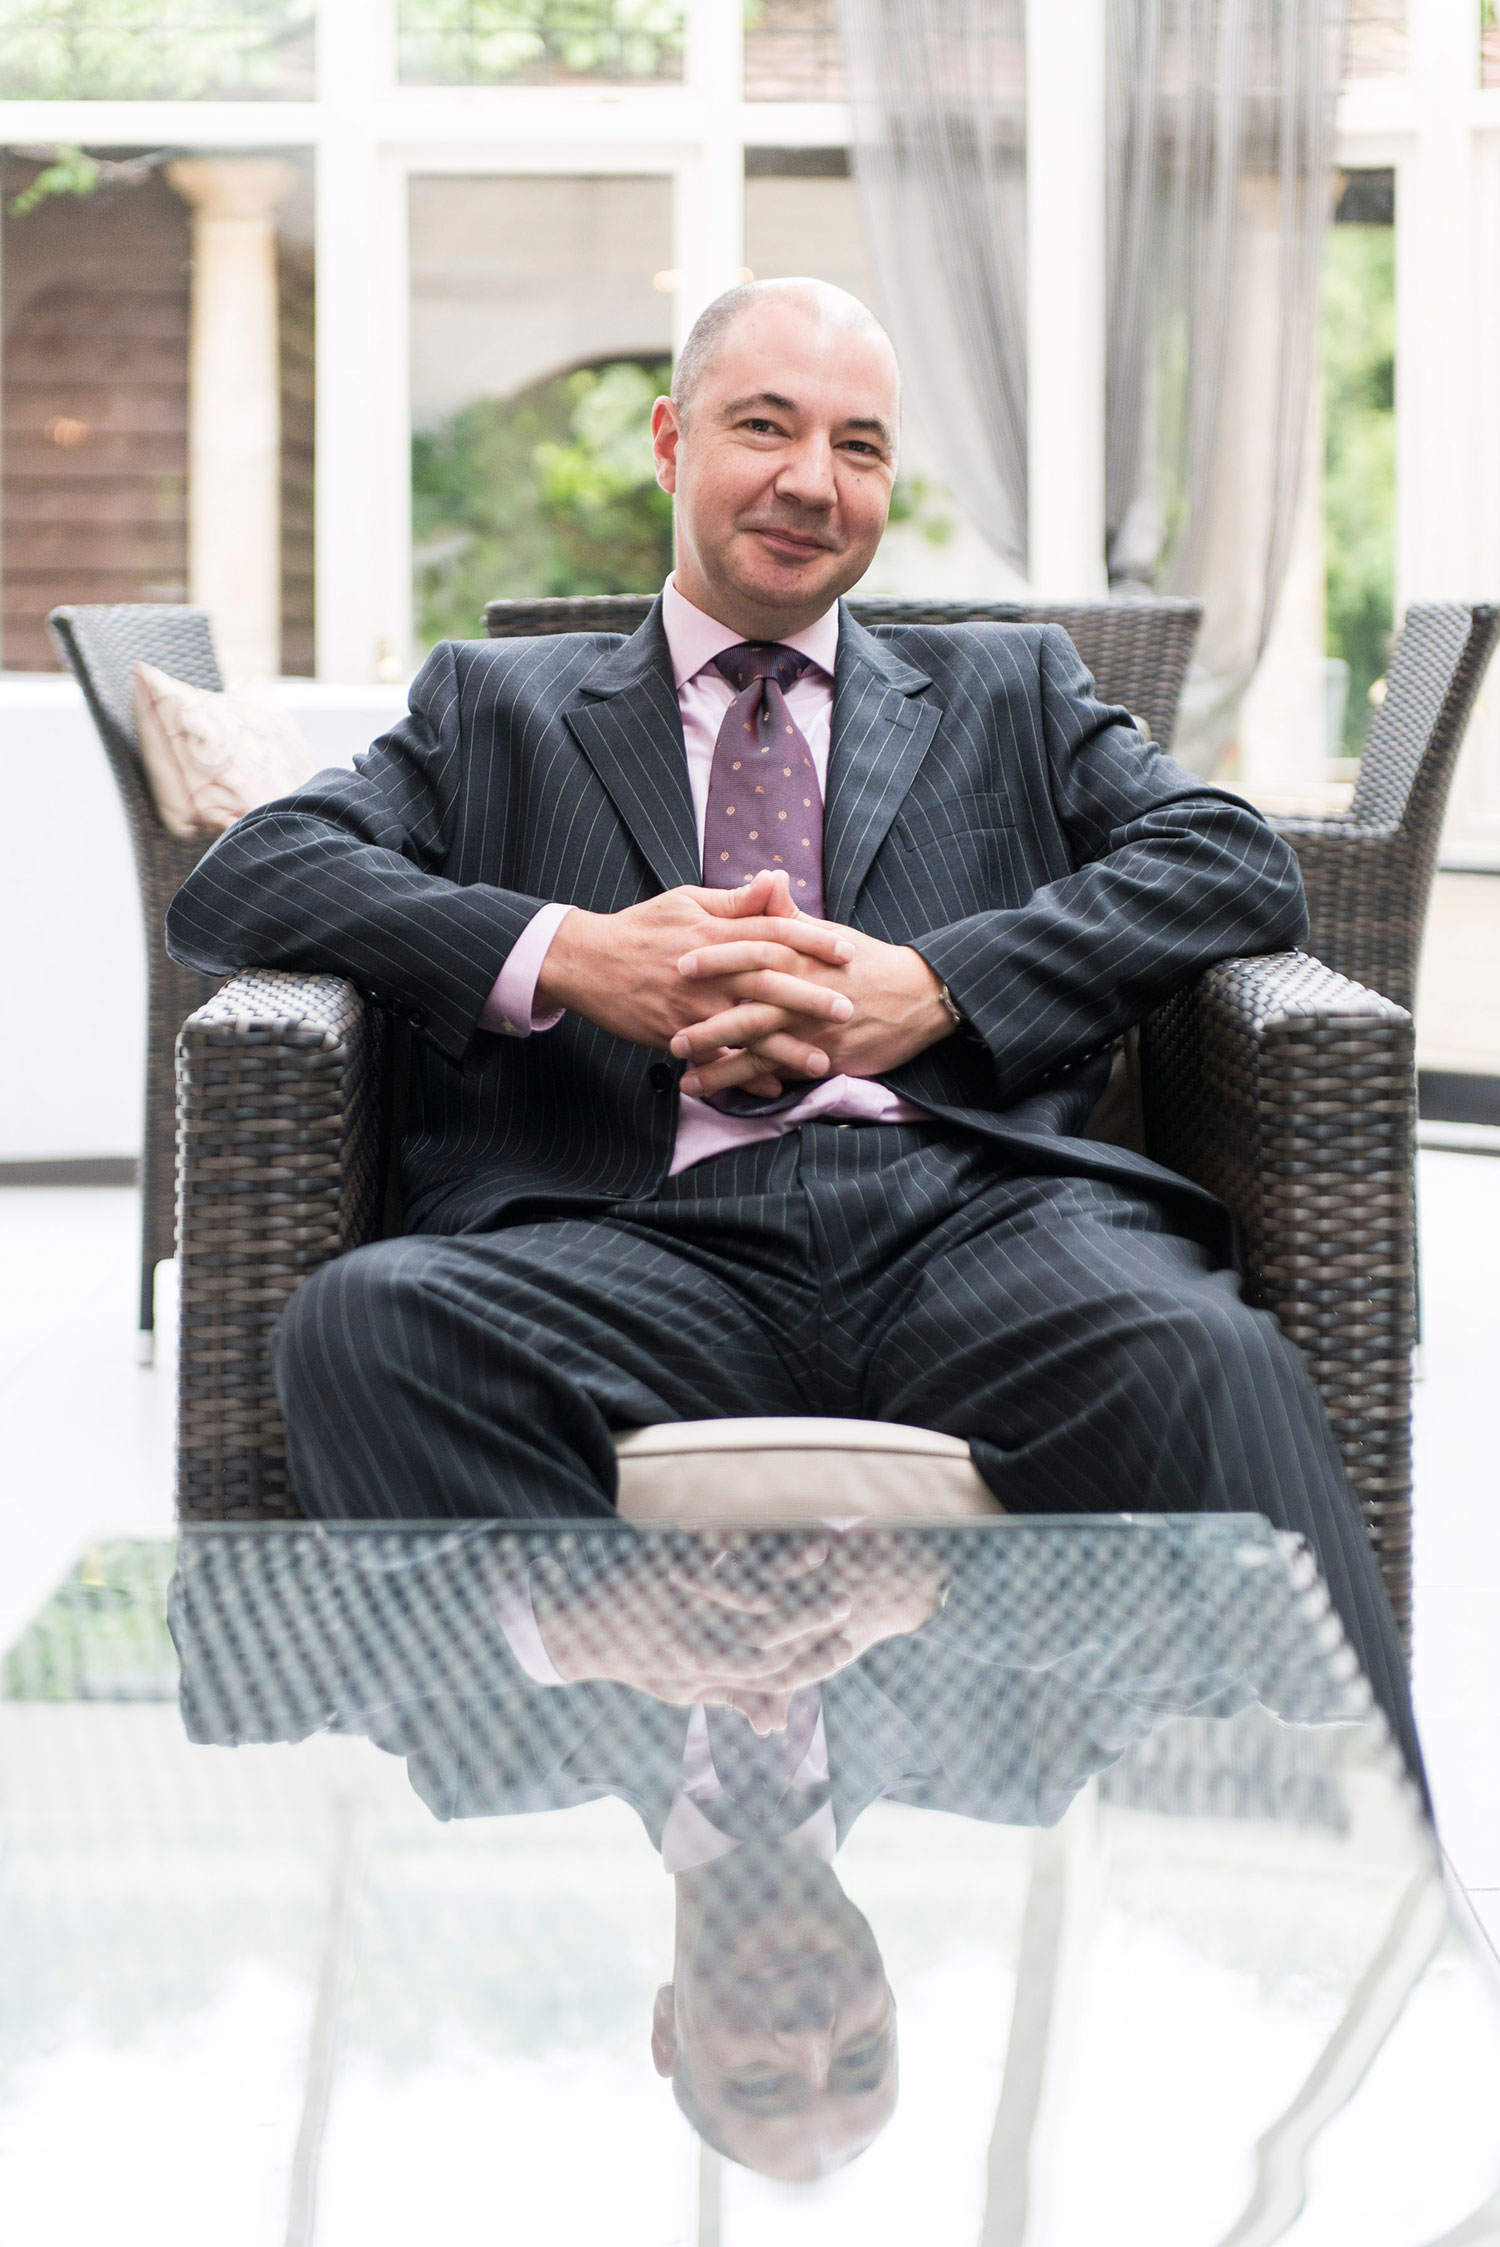 Sussex Hotel Manager Portrait